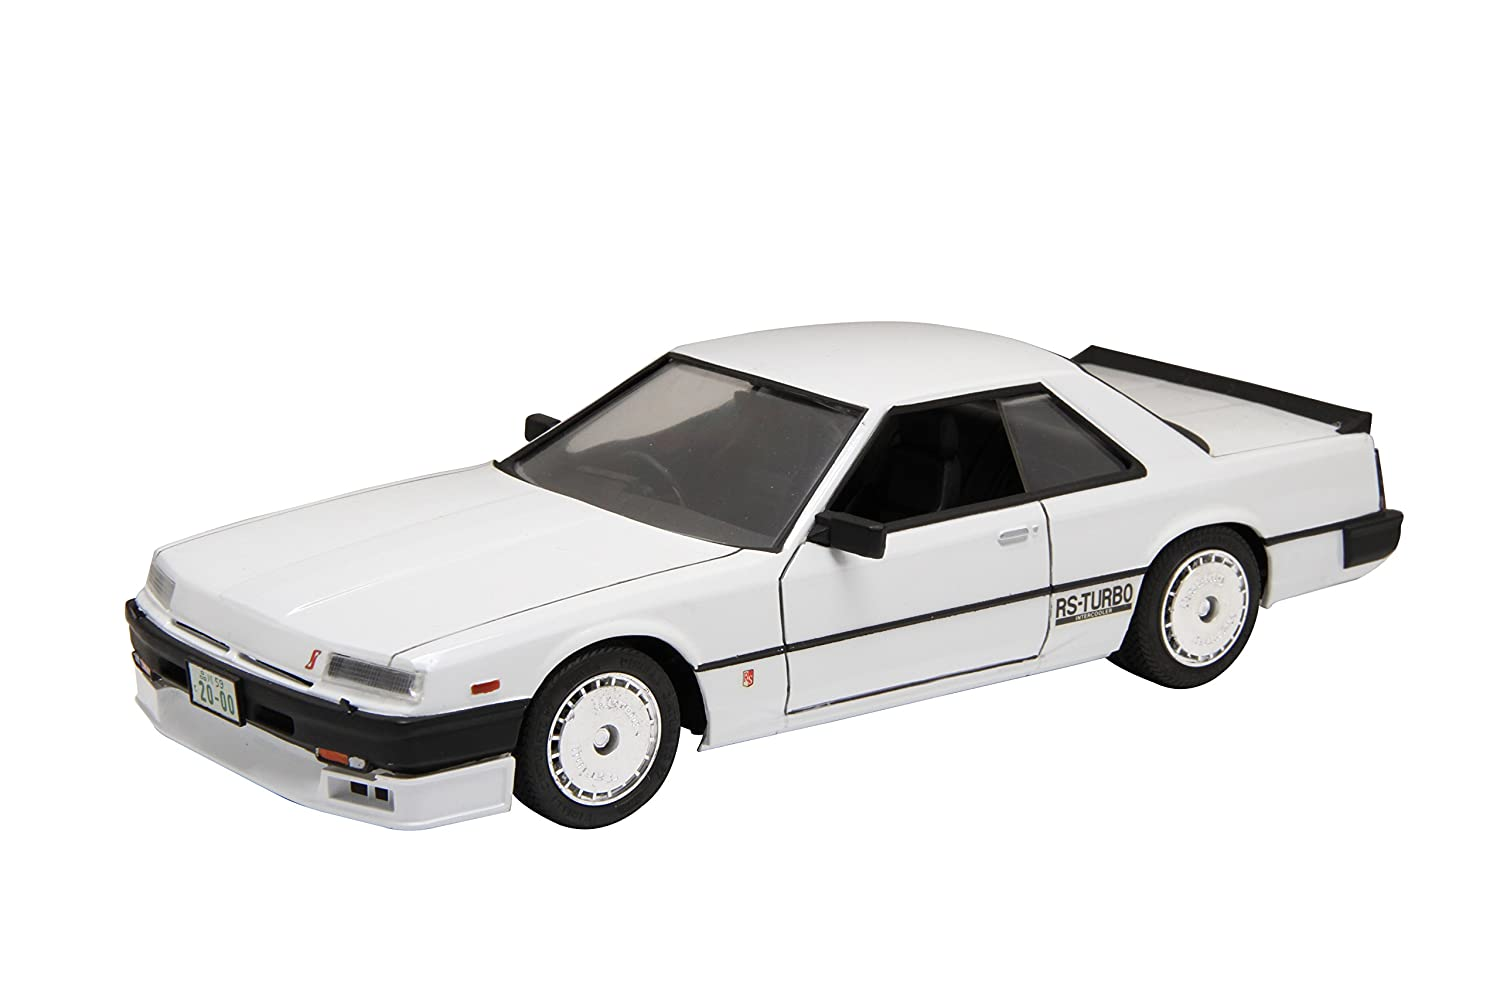 Amazon.com: ID112 1/24 Nissan Skyline 2000 Turbo with Intercooler RS-C R30: Toys & Games